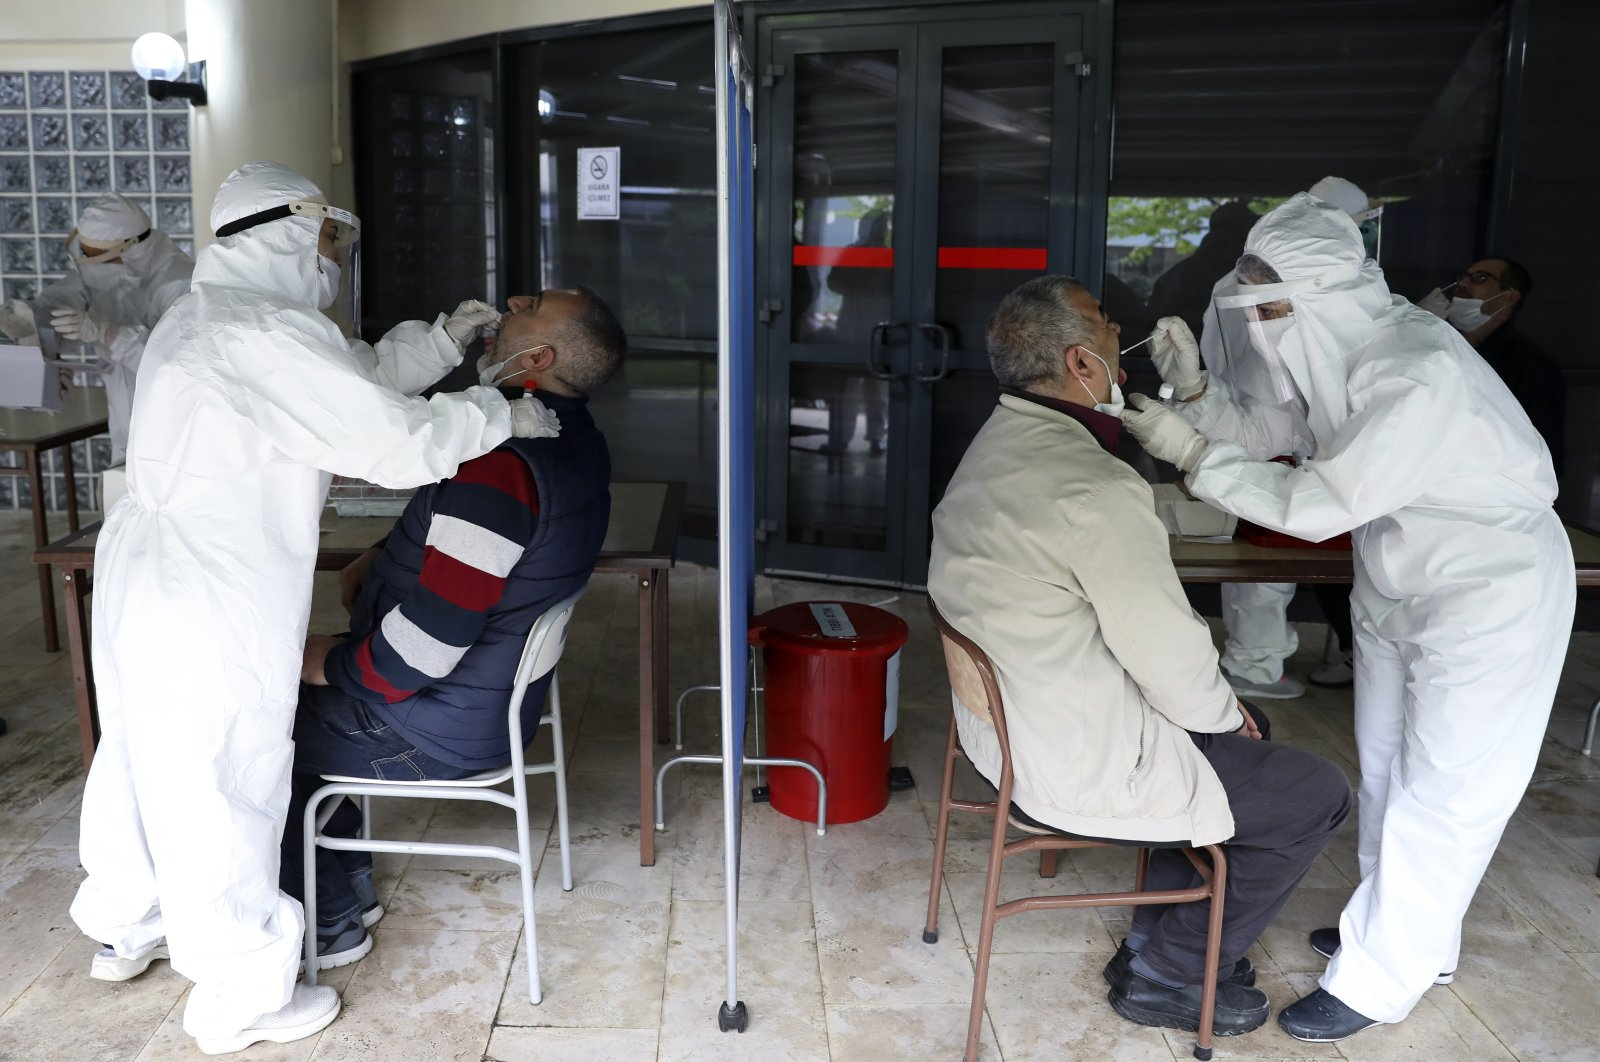 Health care workers run virus tests on residents of a nursing home in the capital Ankara, Turkey, May 9, 2020. (AA Photo)